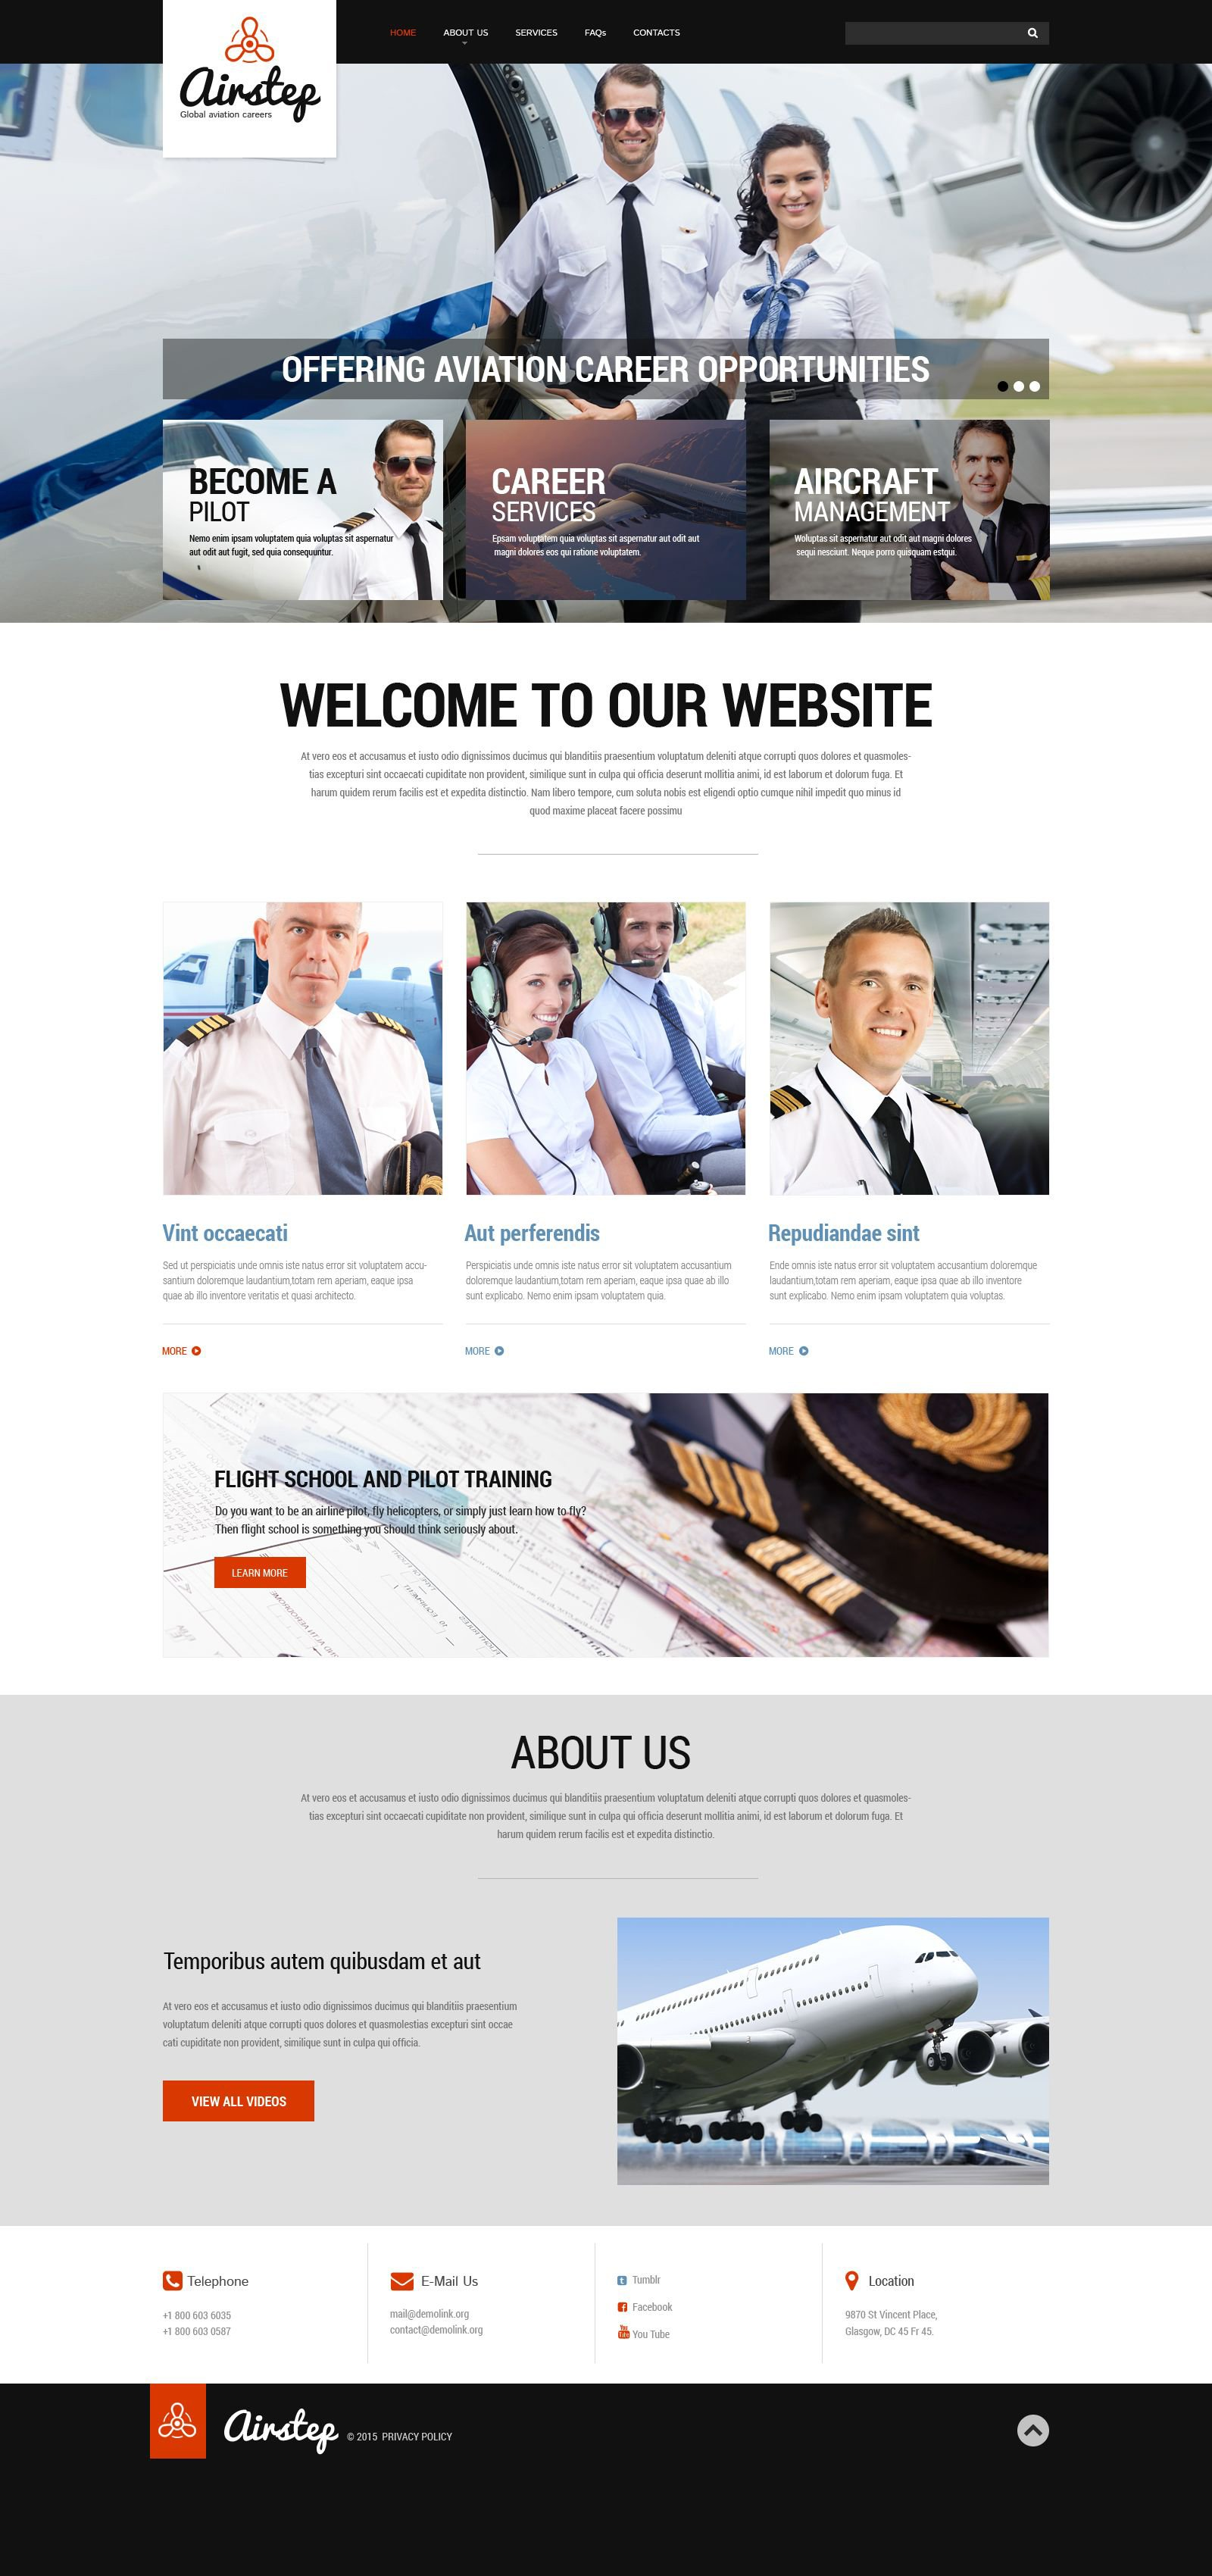 The Airstep Airlines Bootstrap Design 53700, one of the best website templates of its kind (transportation, most popular), also known as airstep airlines website template, airport company website template, flight hotels website template, car website template, citybreaks website template, country website template, departure website template, destination website template, airport website template, returning website template, plan website template, booking website template, ticket website template, arrival website template, reservation website template, travel website template, vacation website template, stewardess website template, offers website template, tours website template, resort website template, location website template, authorization website template, guide website template, visa website template, discount website template, liner and related with airstep airlines, airport company, flight hotels, car, citybreaks, country, departure, destination, airport, returning, plan, booking, ticket, arrival, reservation, travel, vacation, stewardess, offers, tours, resort, location, authorization, guide, visa, discount, liner, etc.